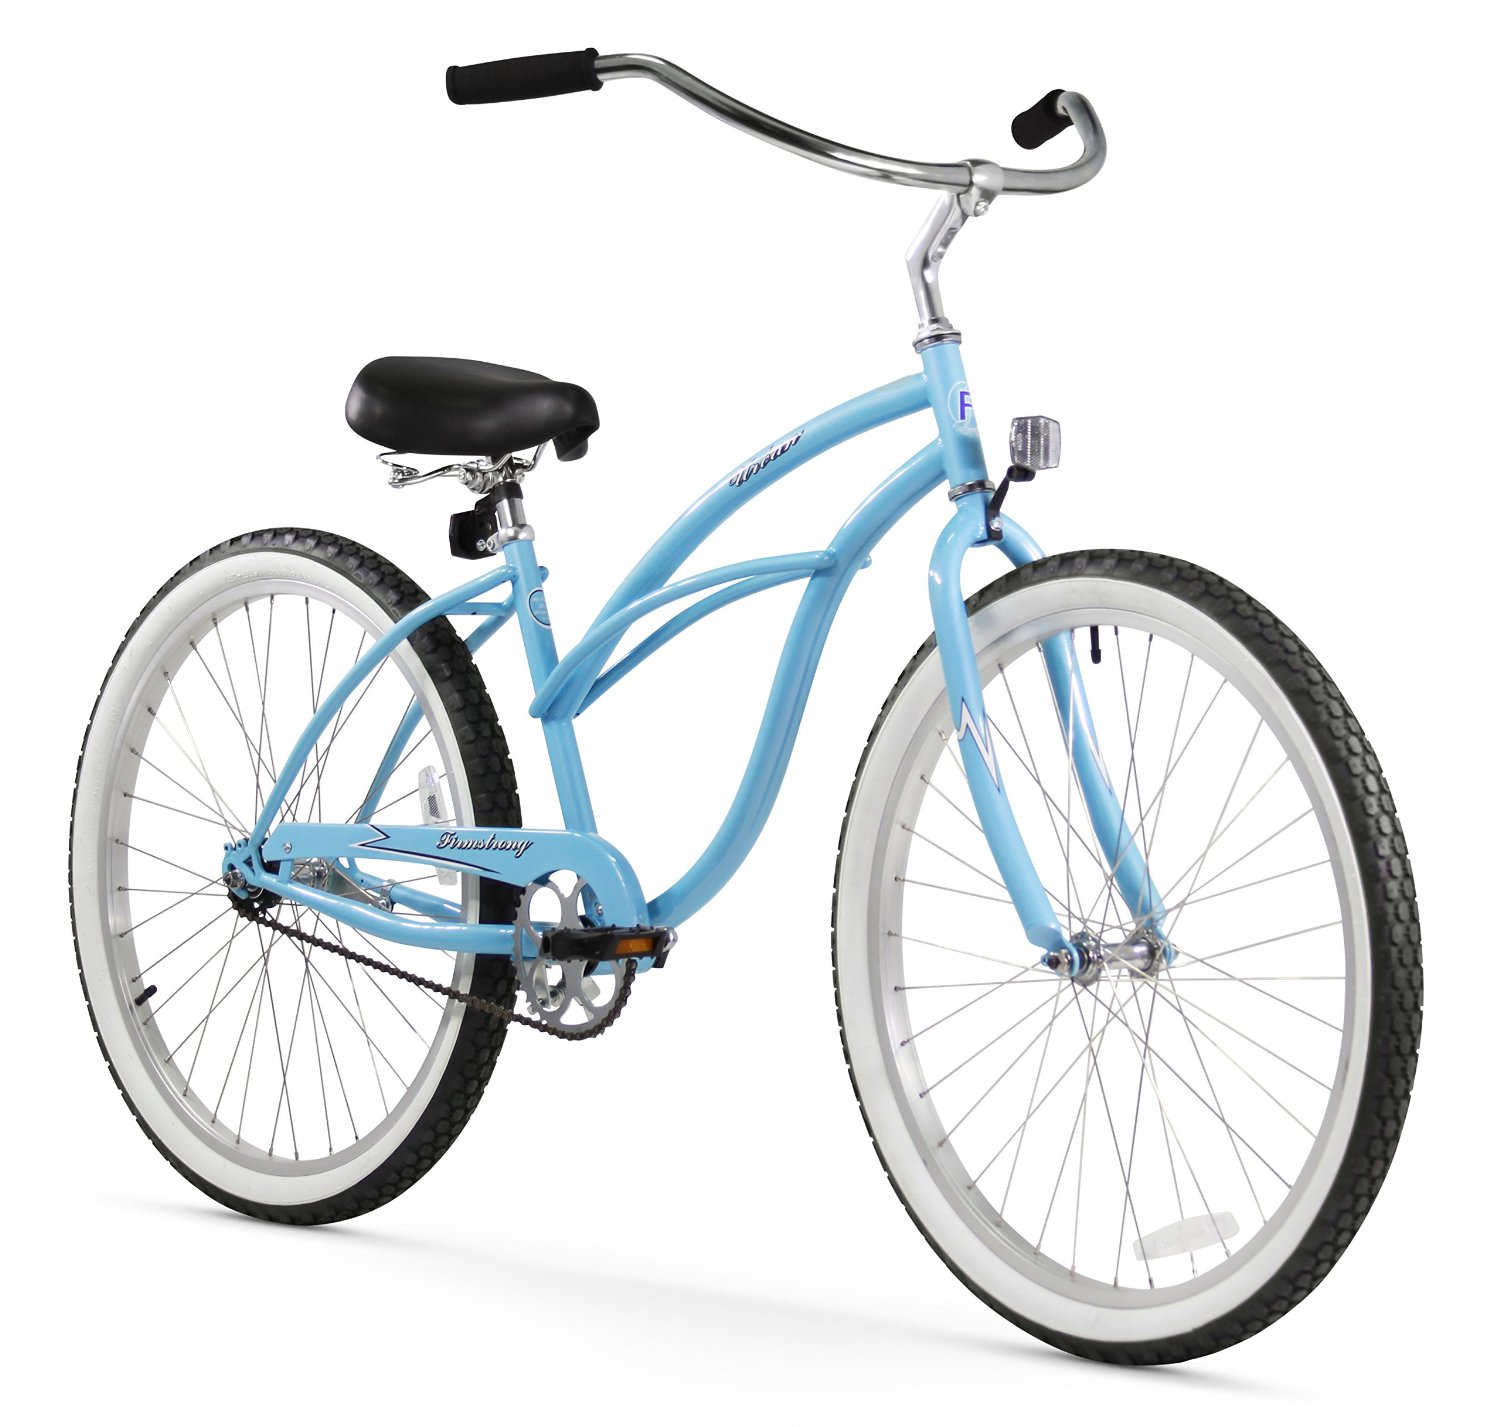 Most Comfortable And The Best-Buy Ladies Bikes Today